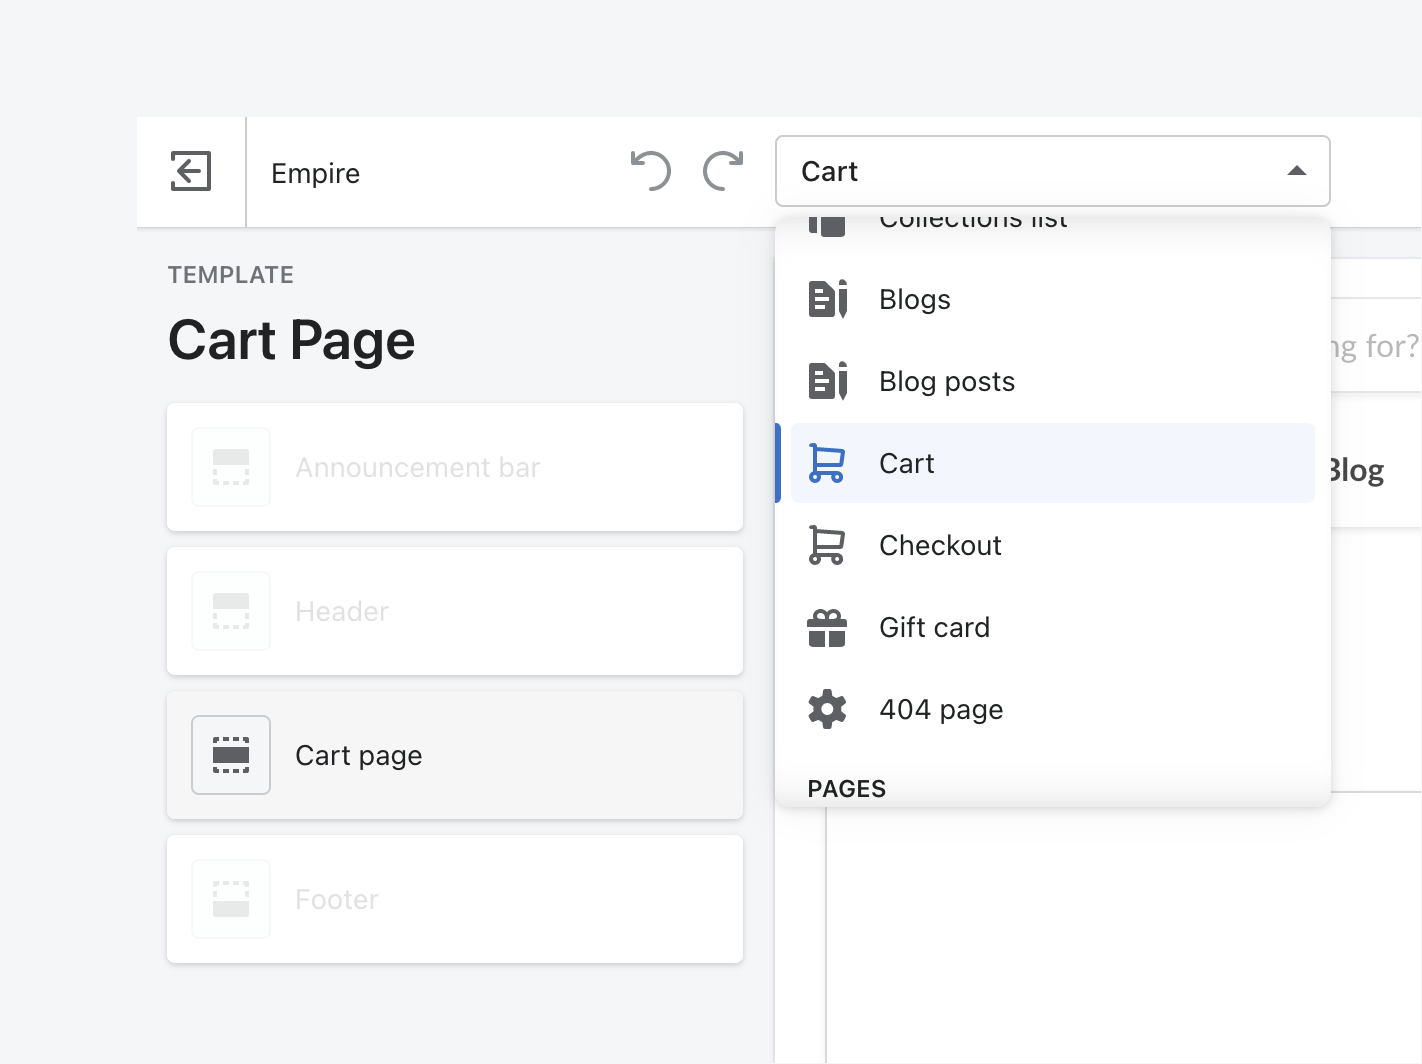 open_cart_page_by_selecting_cart_in_the_dropdown.png